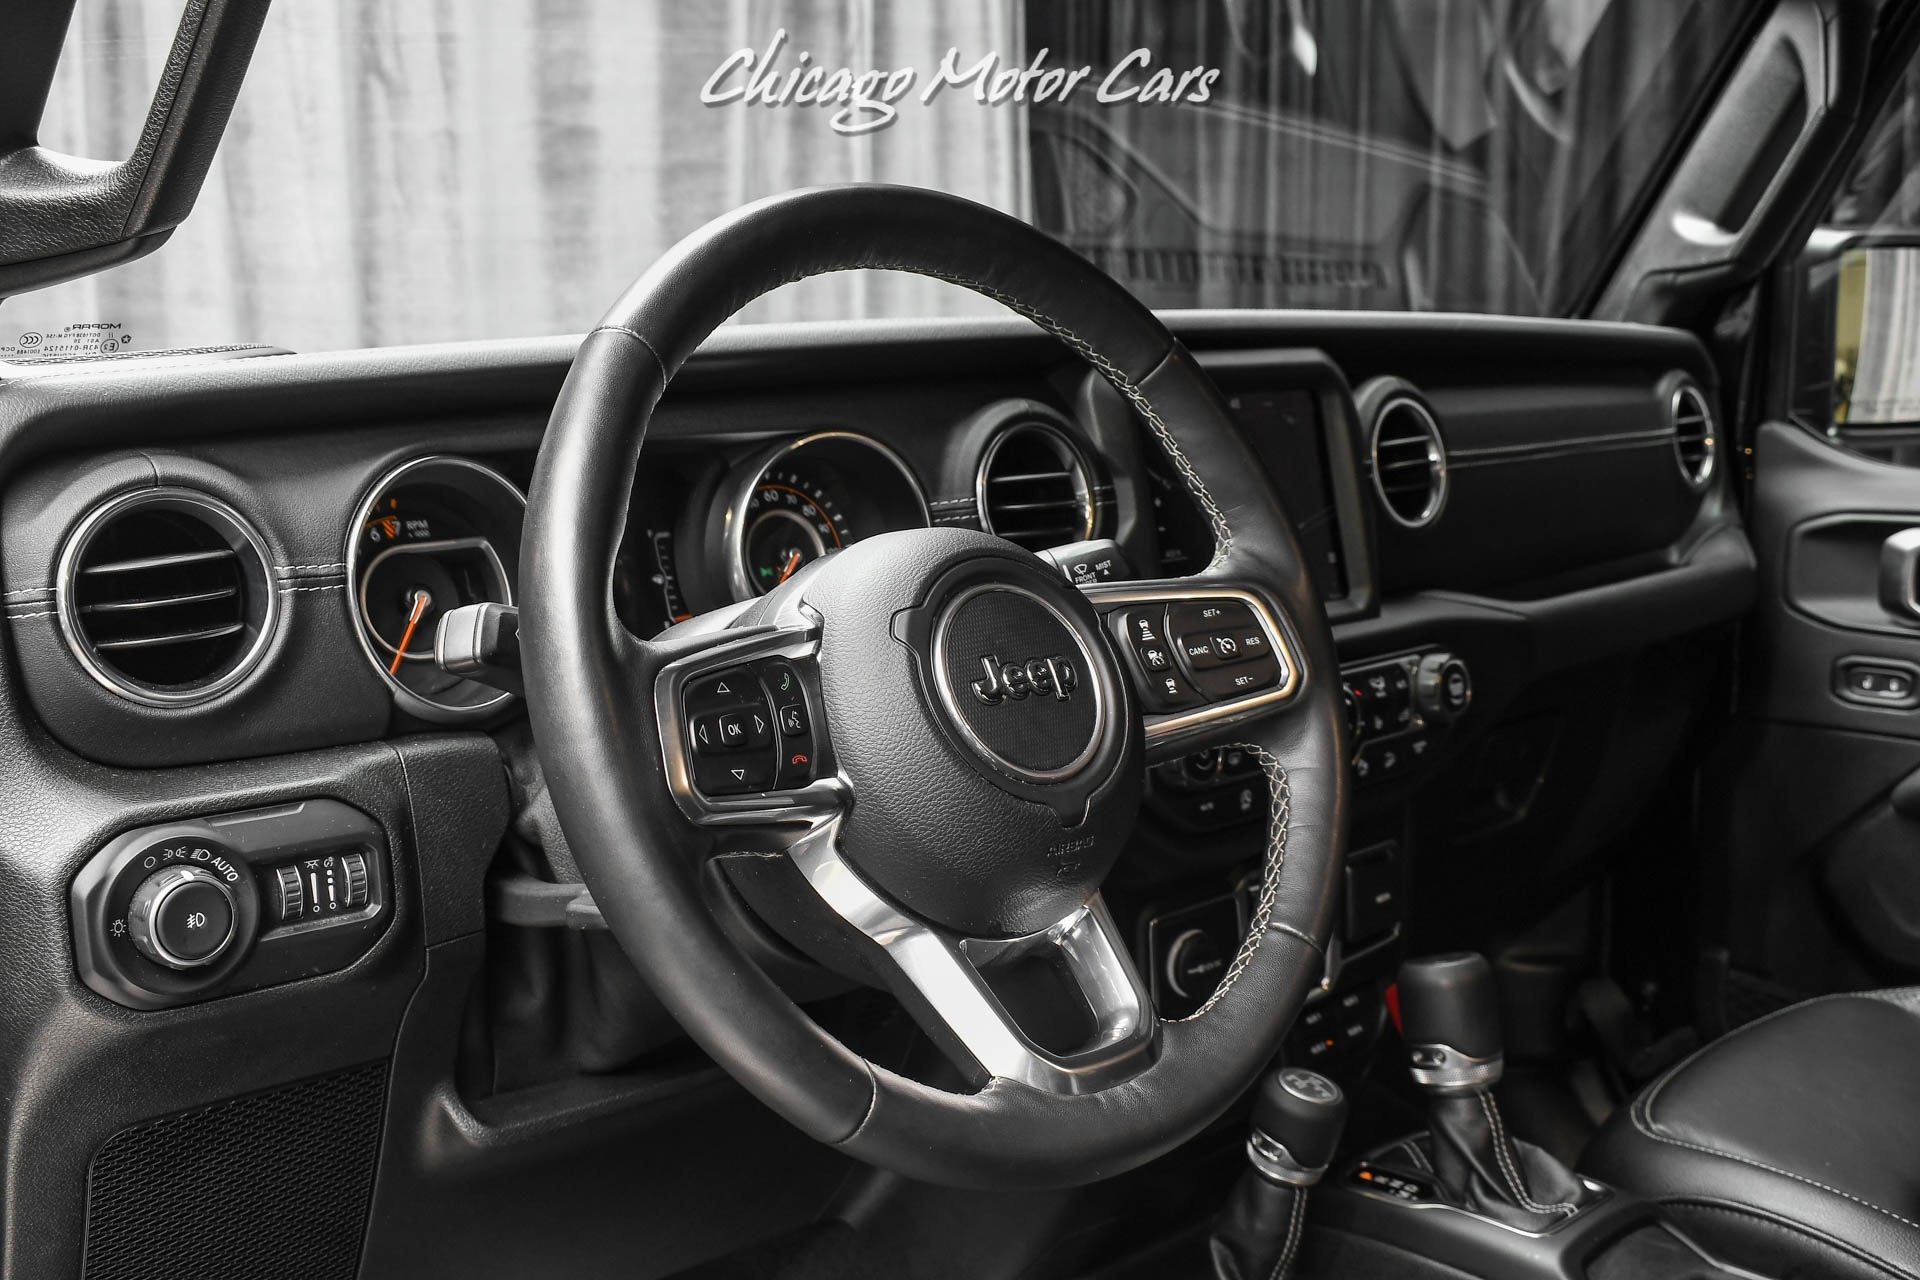 Used-2019-Jeep-Wrangler-Unlimited-Moab-4X4-Rare-Moab-Edition-Adaptive-Cruise-Control-Cold-Weather-Group